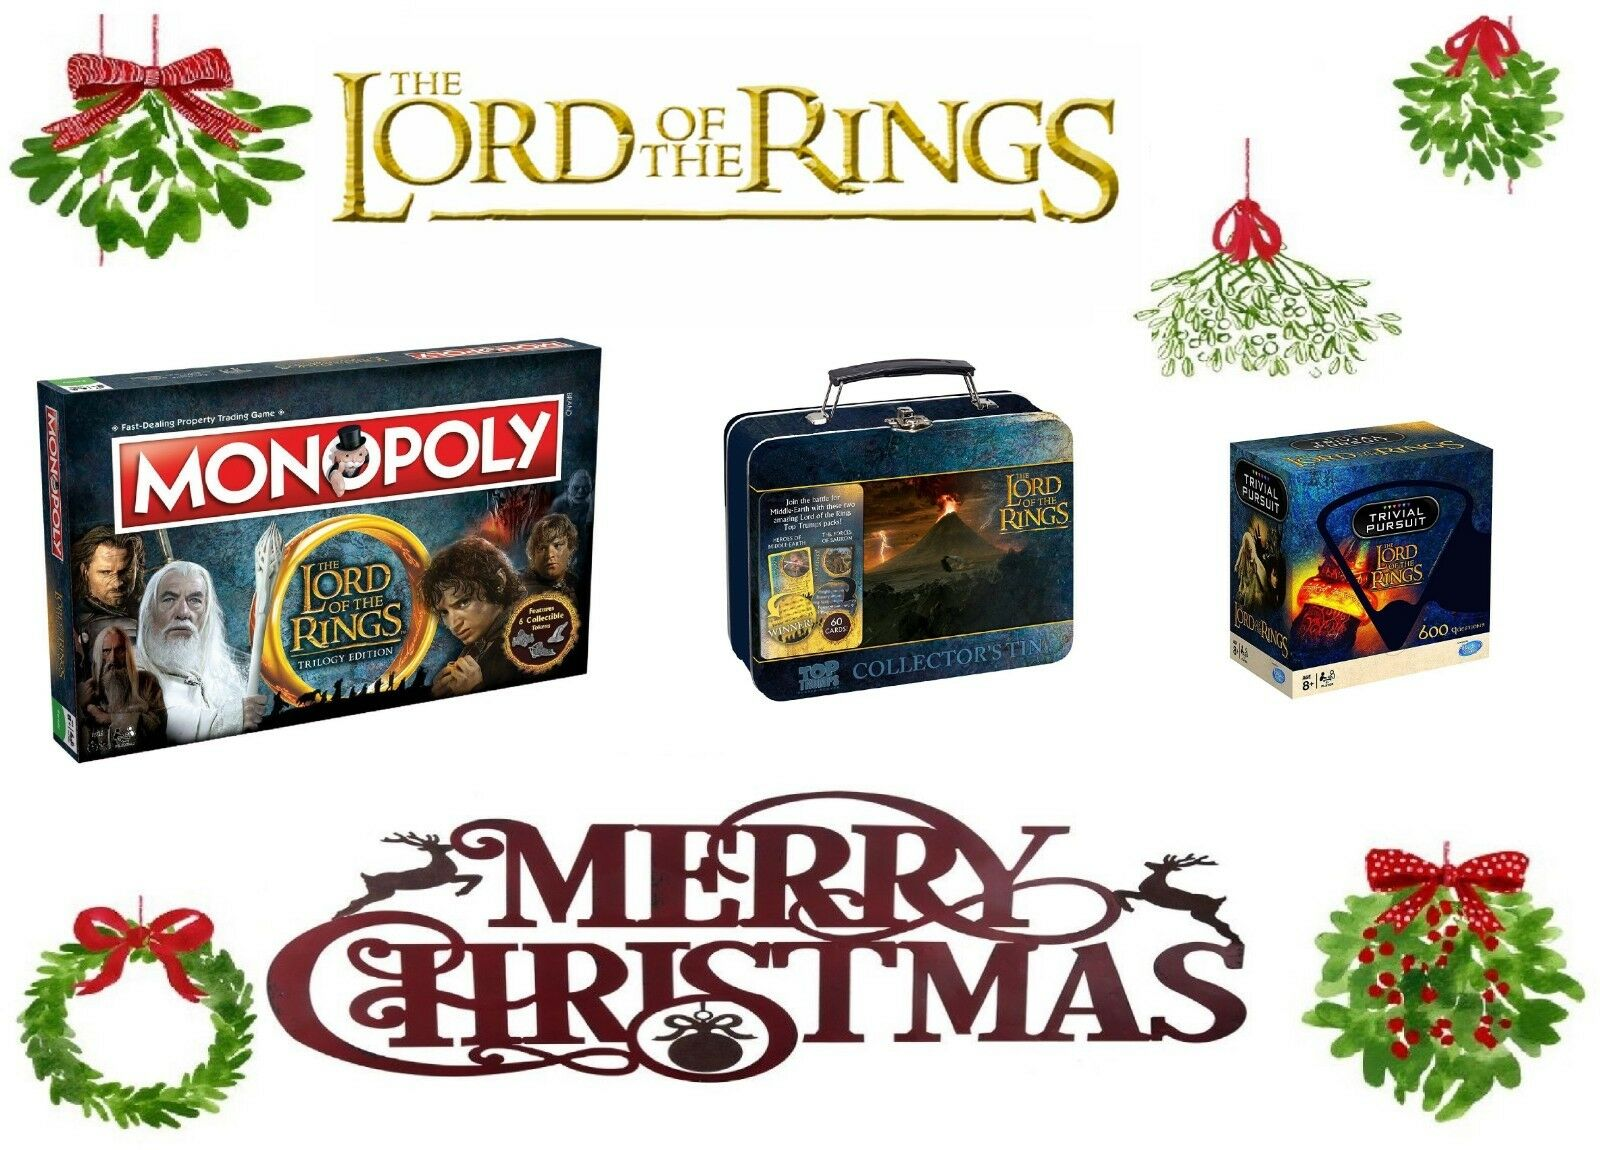 Lord Of The Rings - Trivial Pursuit / Monopoly / TT Tin - 2018/2019 XMAS Gift